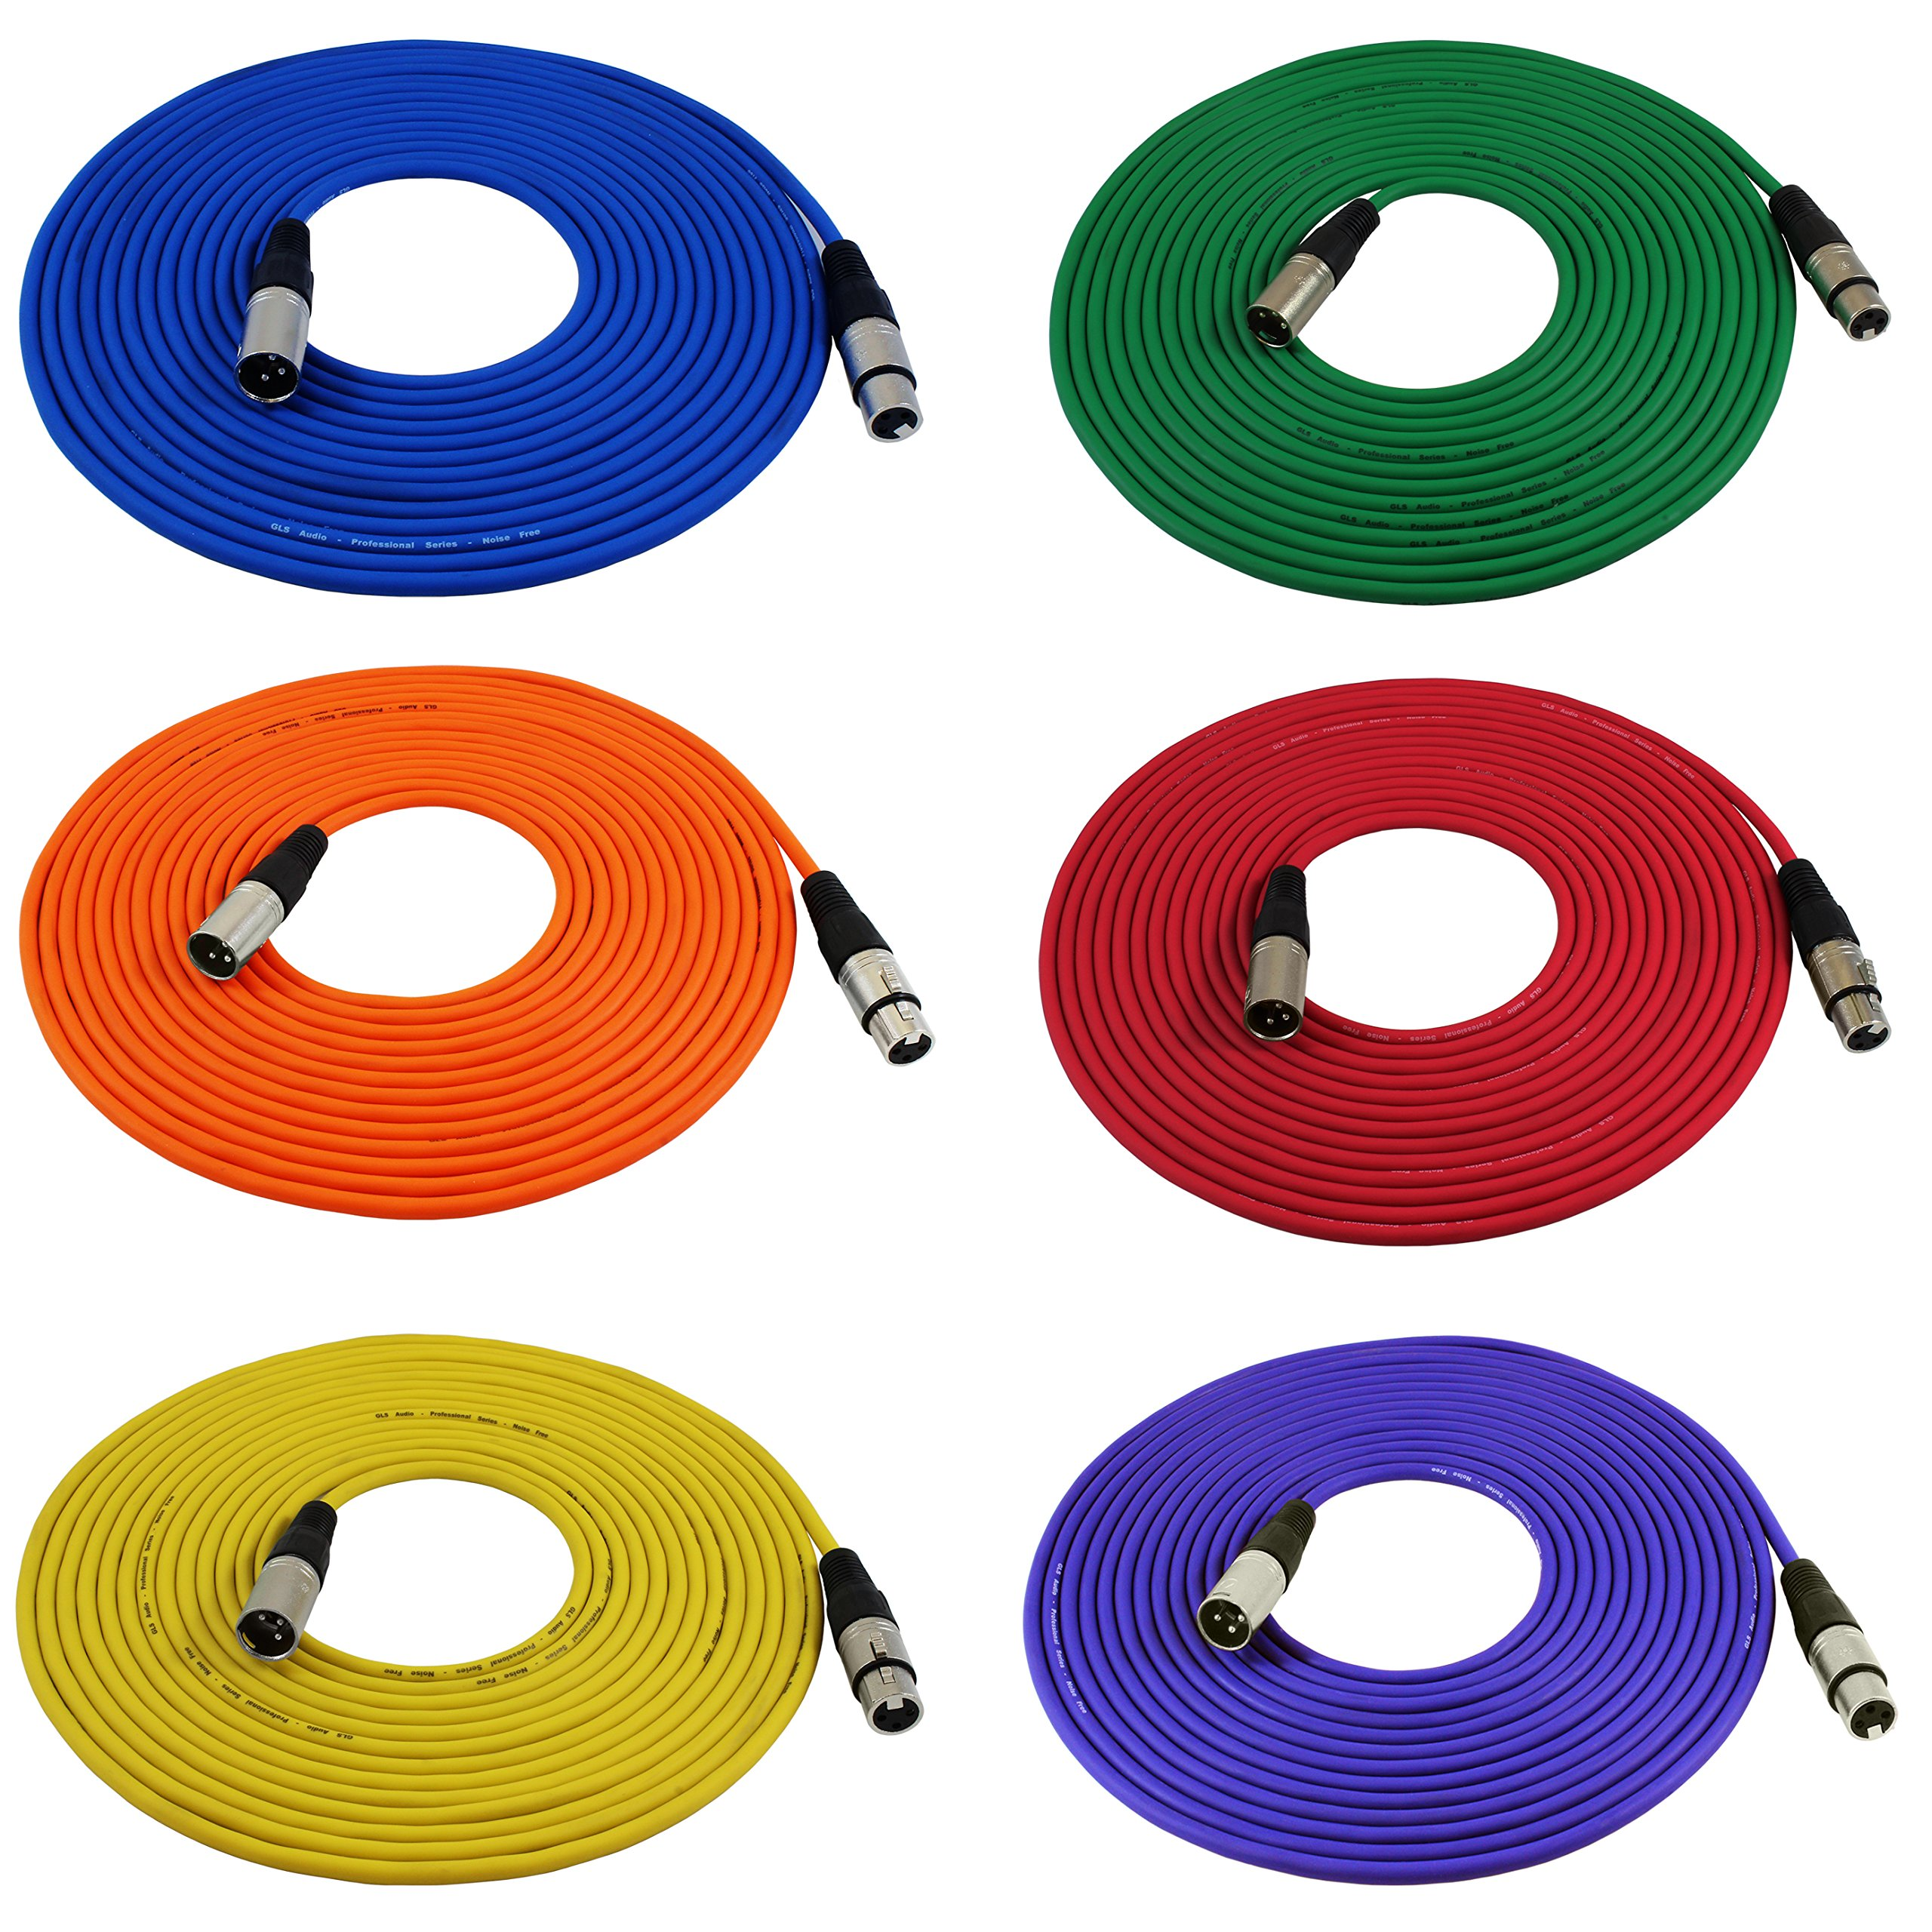 GLS Audio 25ft Mic Cable Cords - XLR Male to XLR Female Colored Cables - 25' Balanced Mike Cord - 6 PACK by GLS Audio